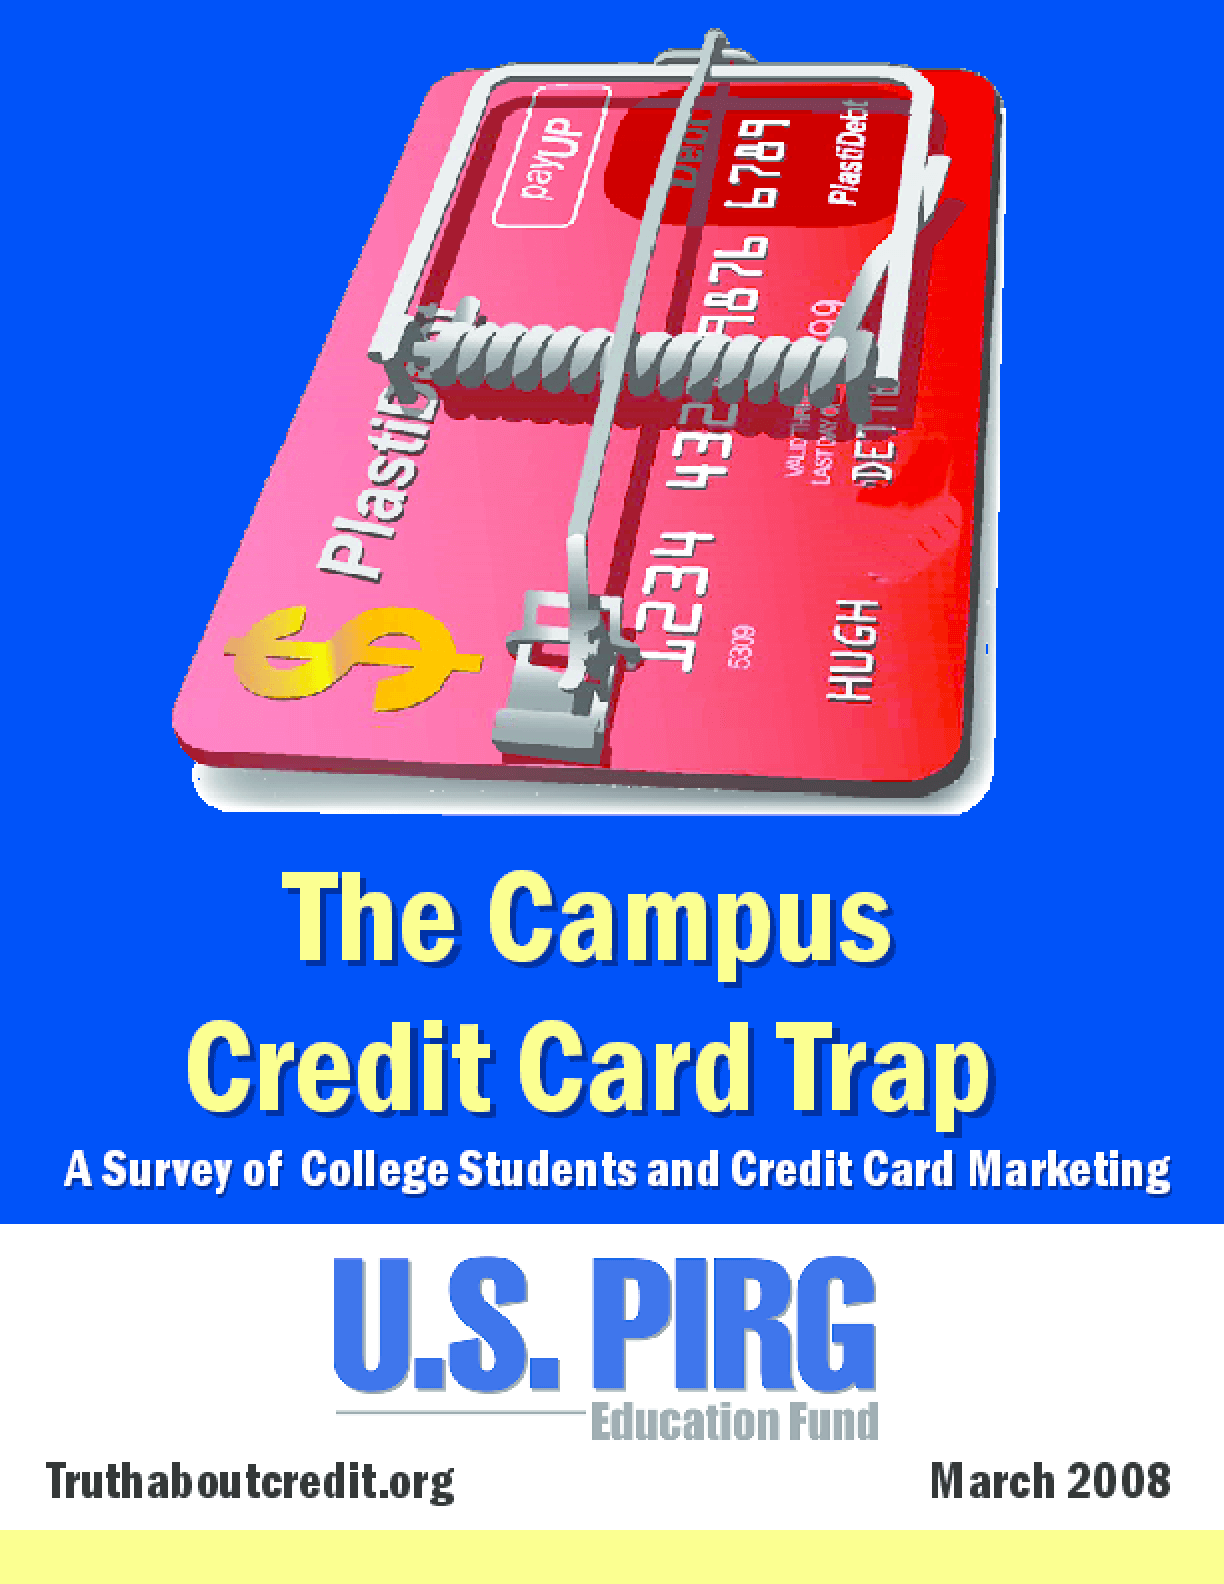 The Campus Credit Card Trap: A Survey of College Students and Credit Card Marketing